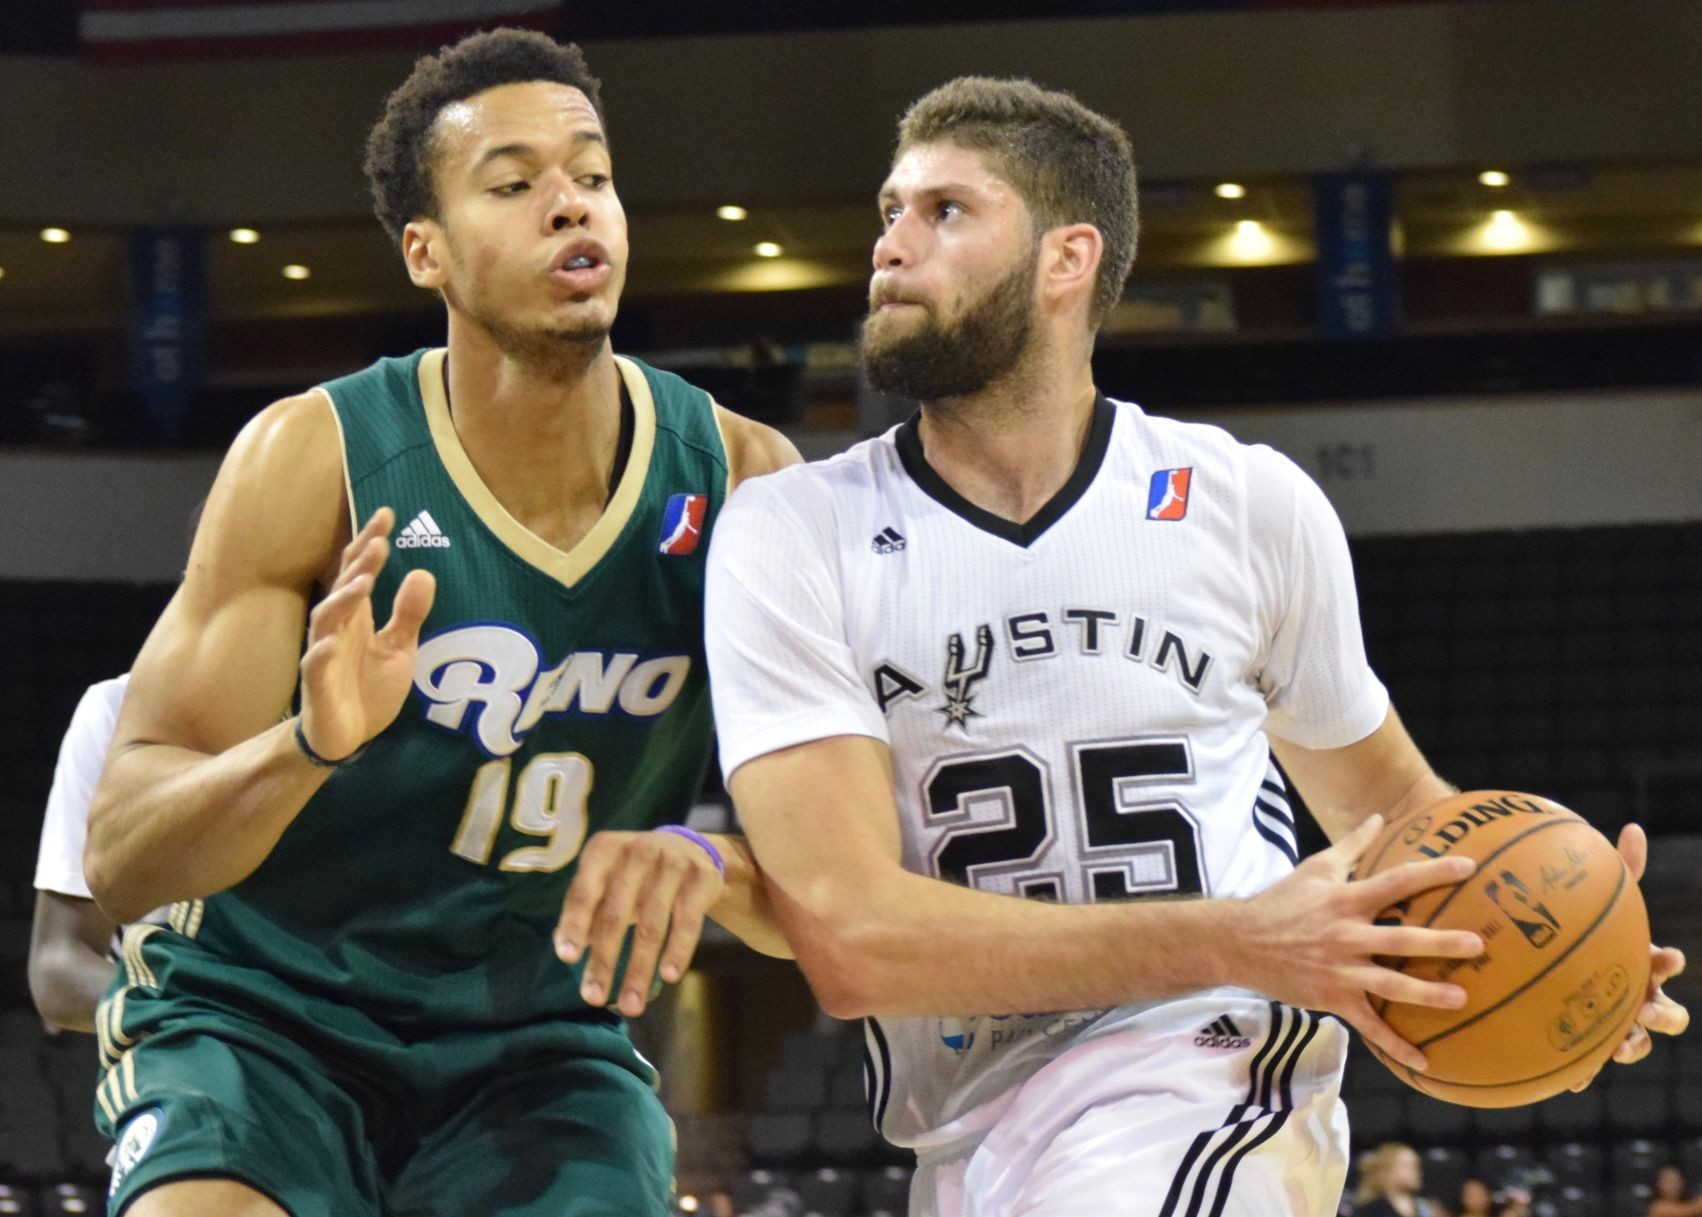 Patricio Garino scored 25 points, grabbed eight rebounds and had five assists, leading the Austin Spurs to a 106-97 win against the Reno Bighorns Thursday night.